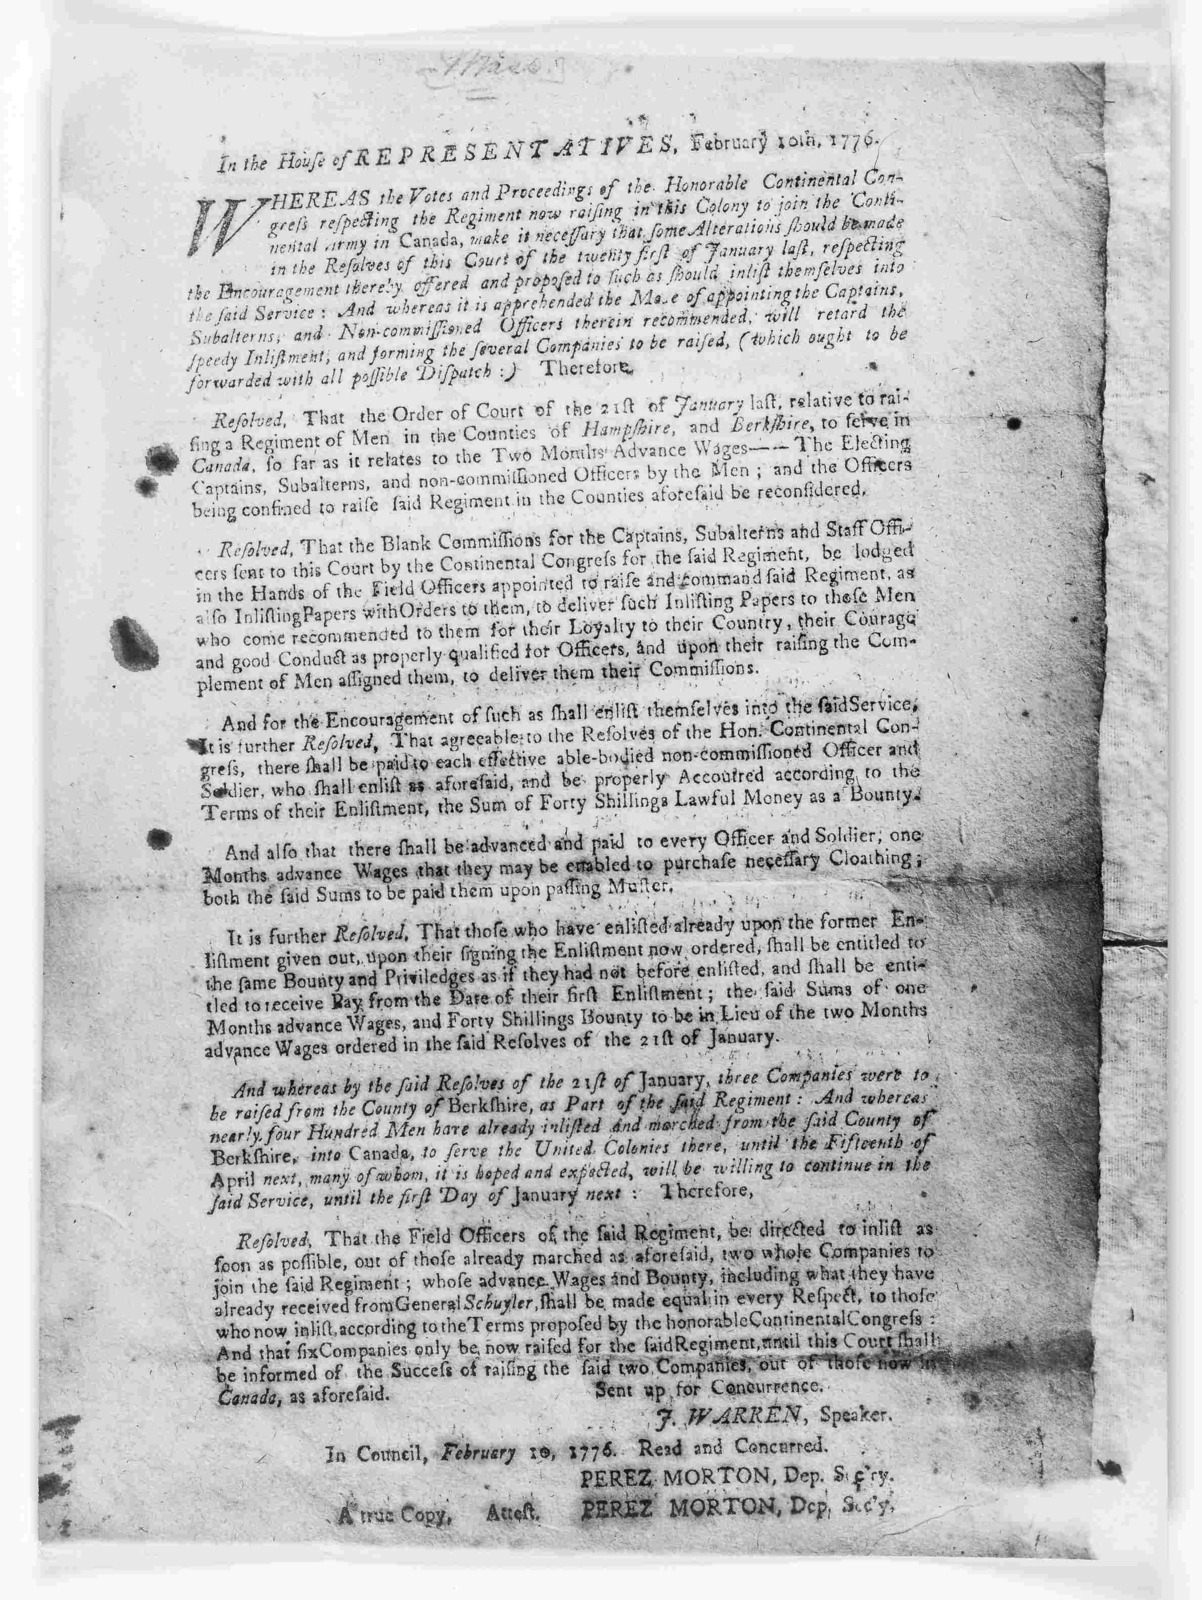 In the House of representatives. February 10 1776. Whereas the votes and proceedings of the Honorable Continental Congress respecting the regiment now raising in this Colony to join the Continental army in Canada, make it necessary that some alt